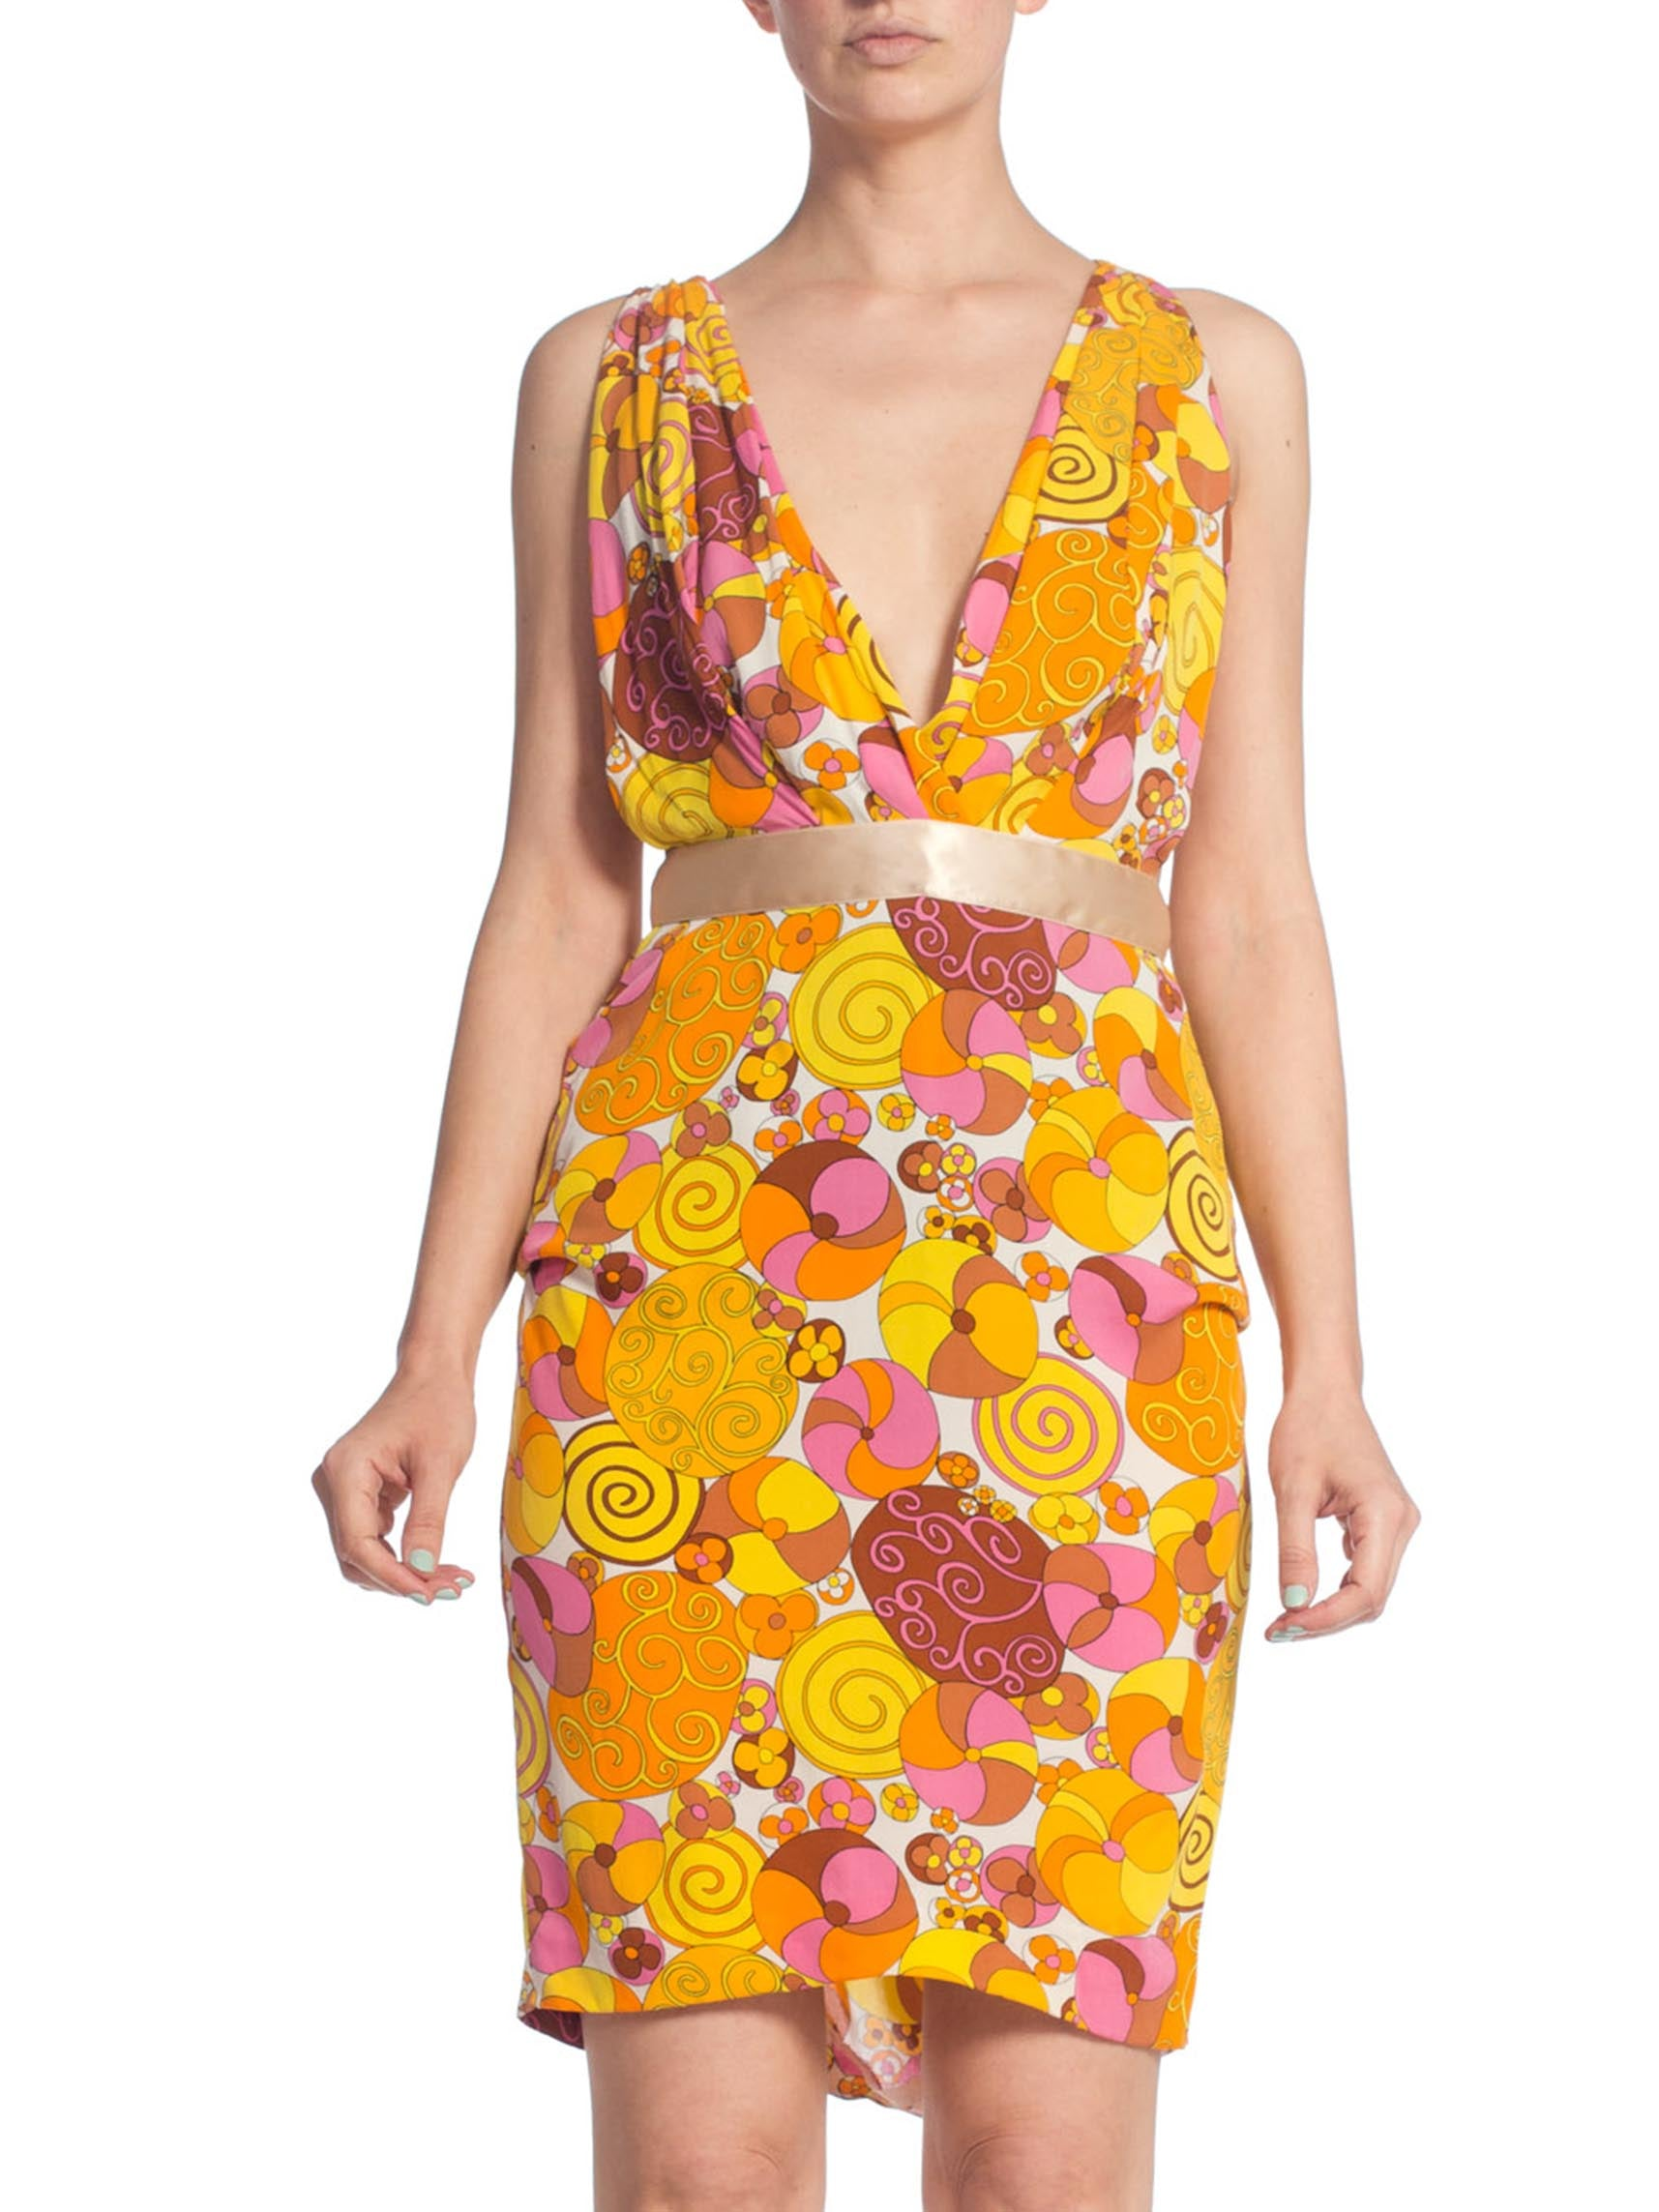 2000S DOLCE & GABBANA Orange Psychedelic Silk Lycra Low Cut Backless Cocktail Dress